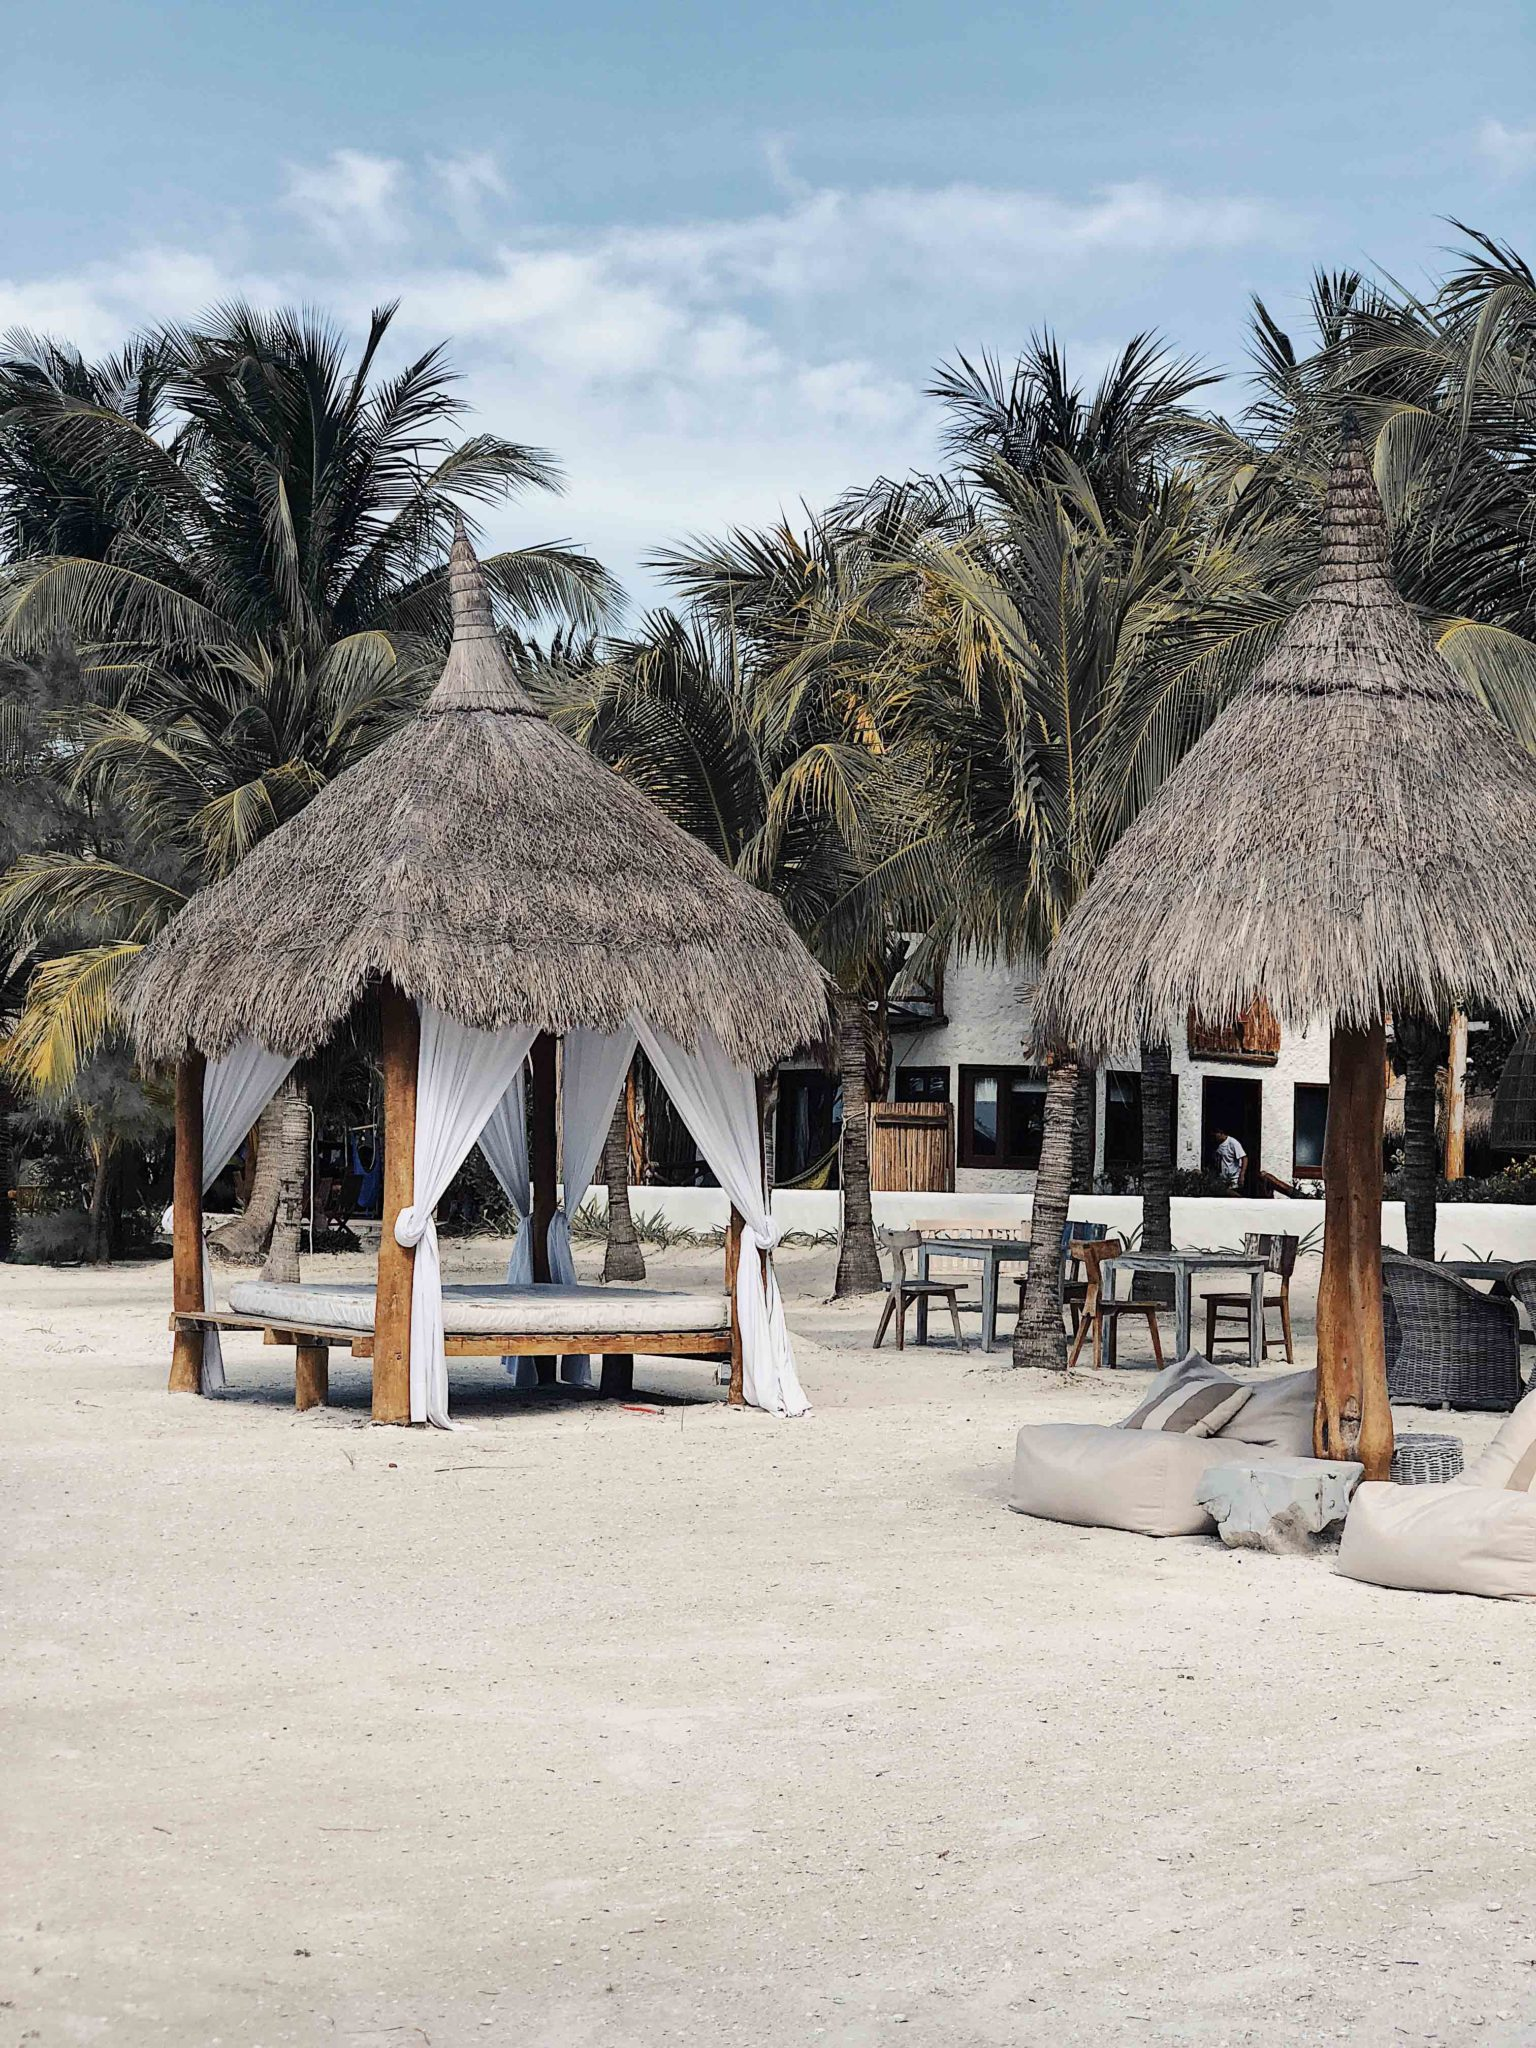 Holbox Travel Diaries: Beach Paradise at 2 hours from Cancun